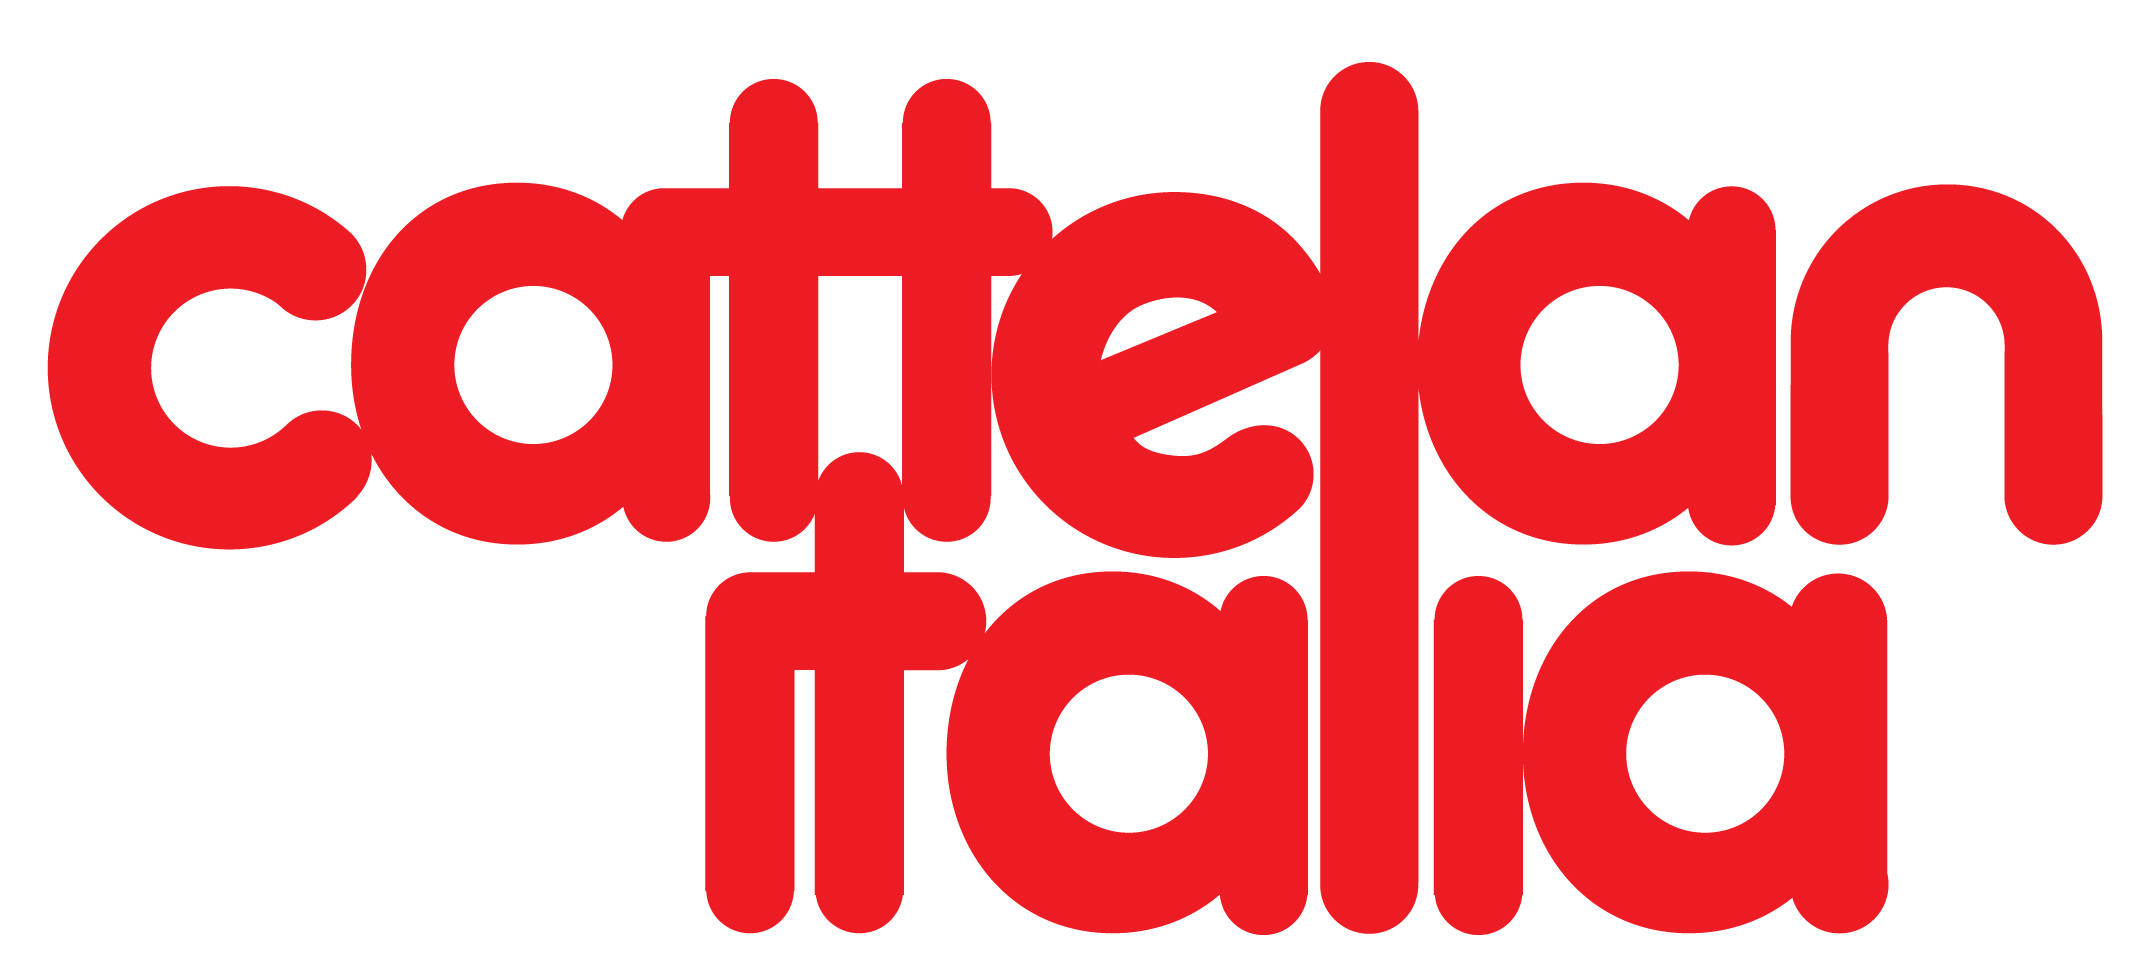 Cattelan Italia Logo Wallpaper